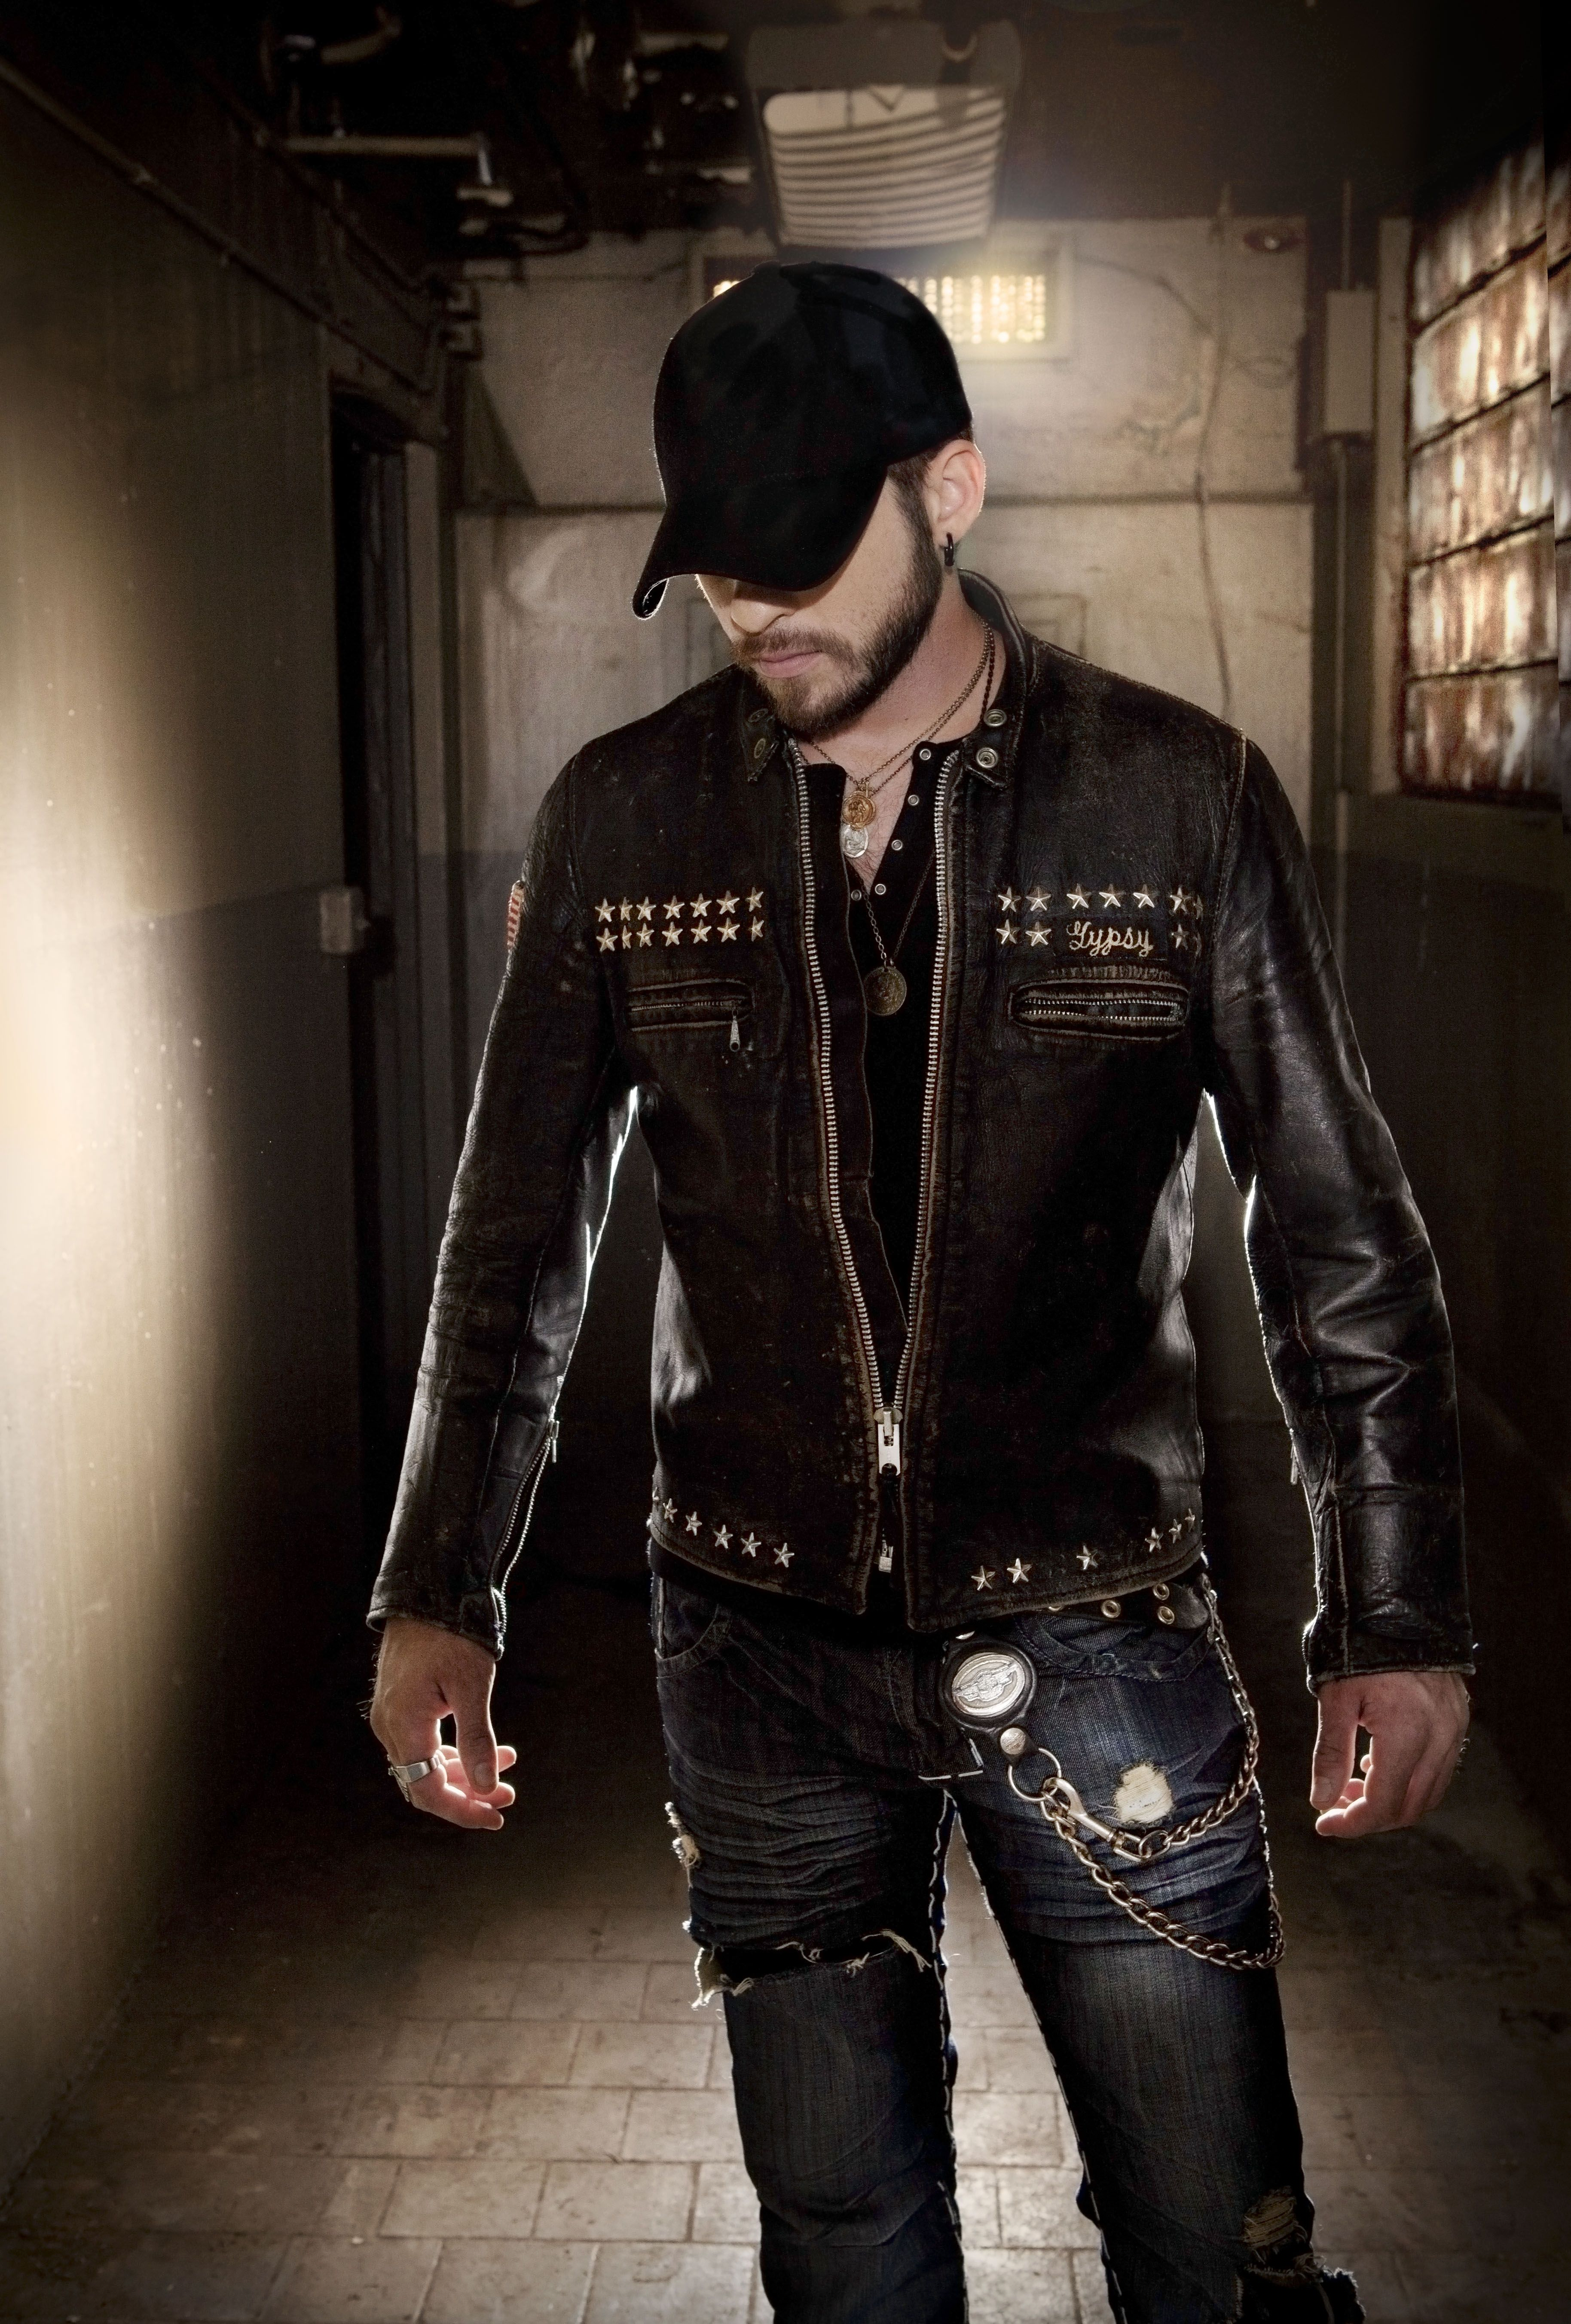 Brantley Gilbert Not A Huge Fan Of Him But This Photo Is